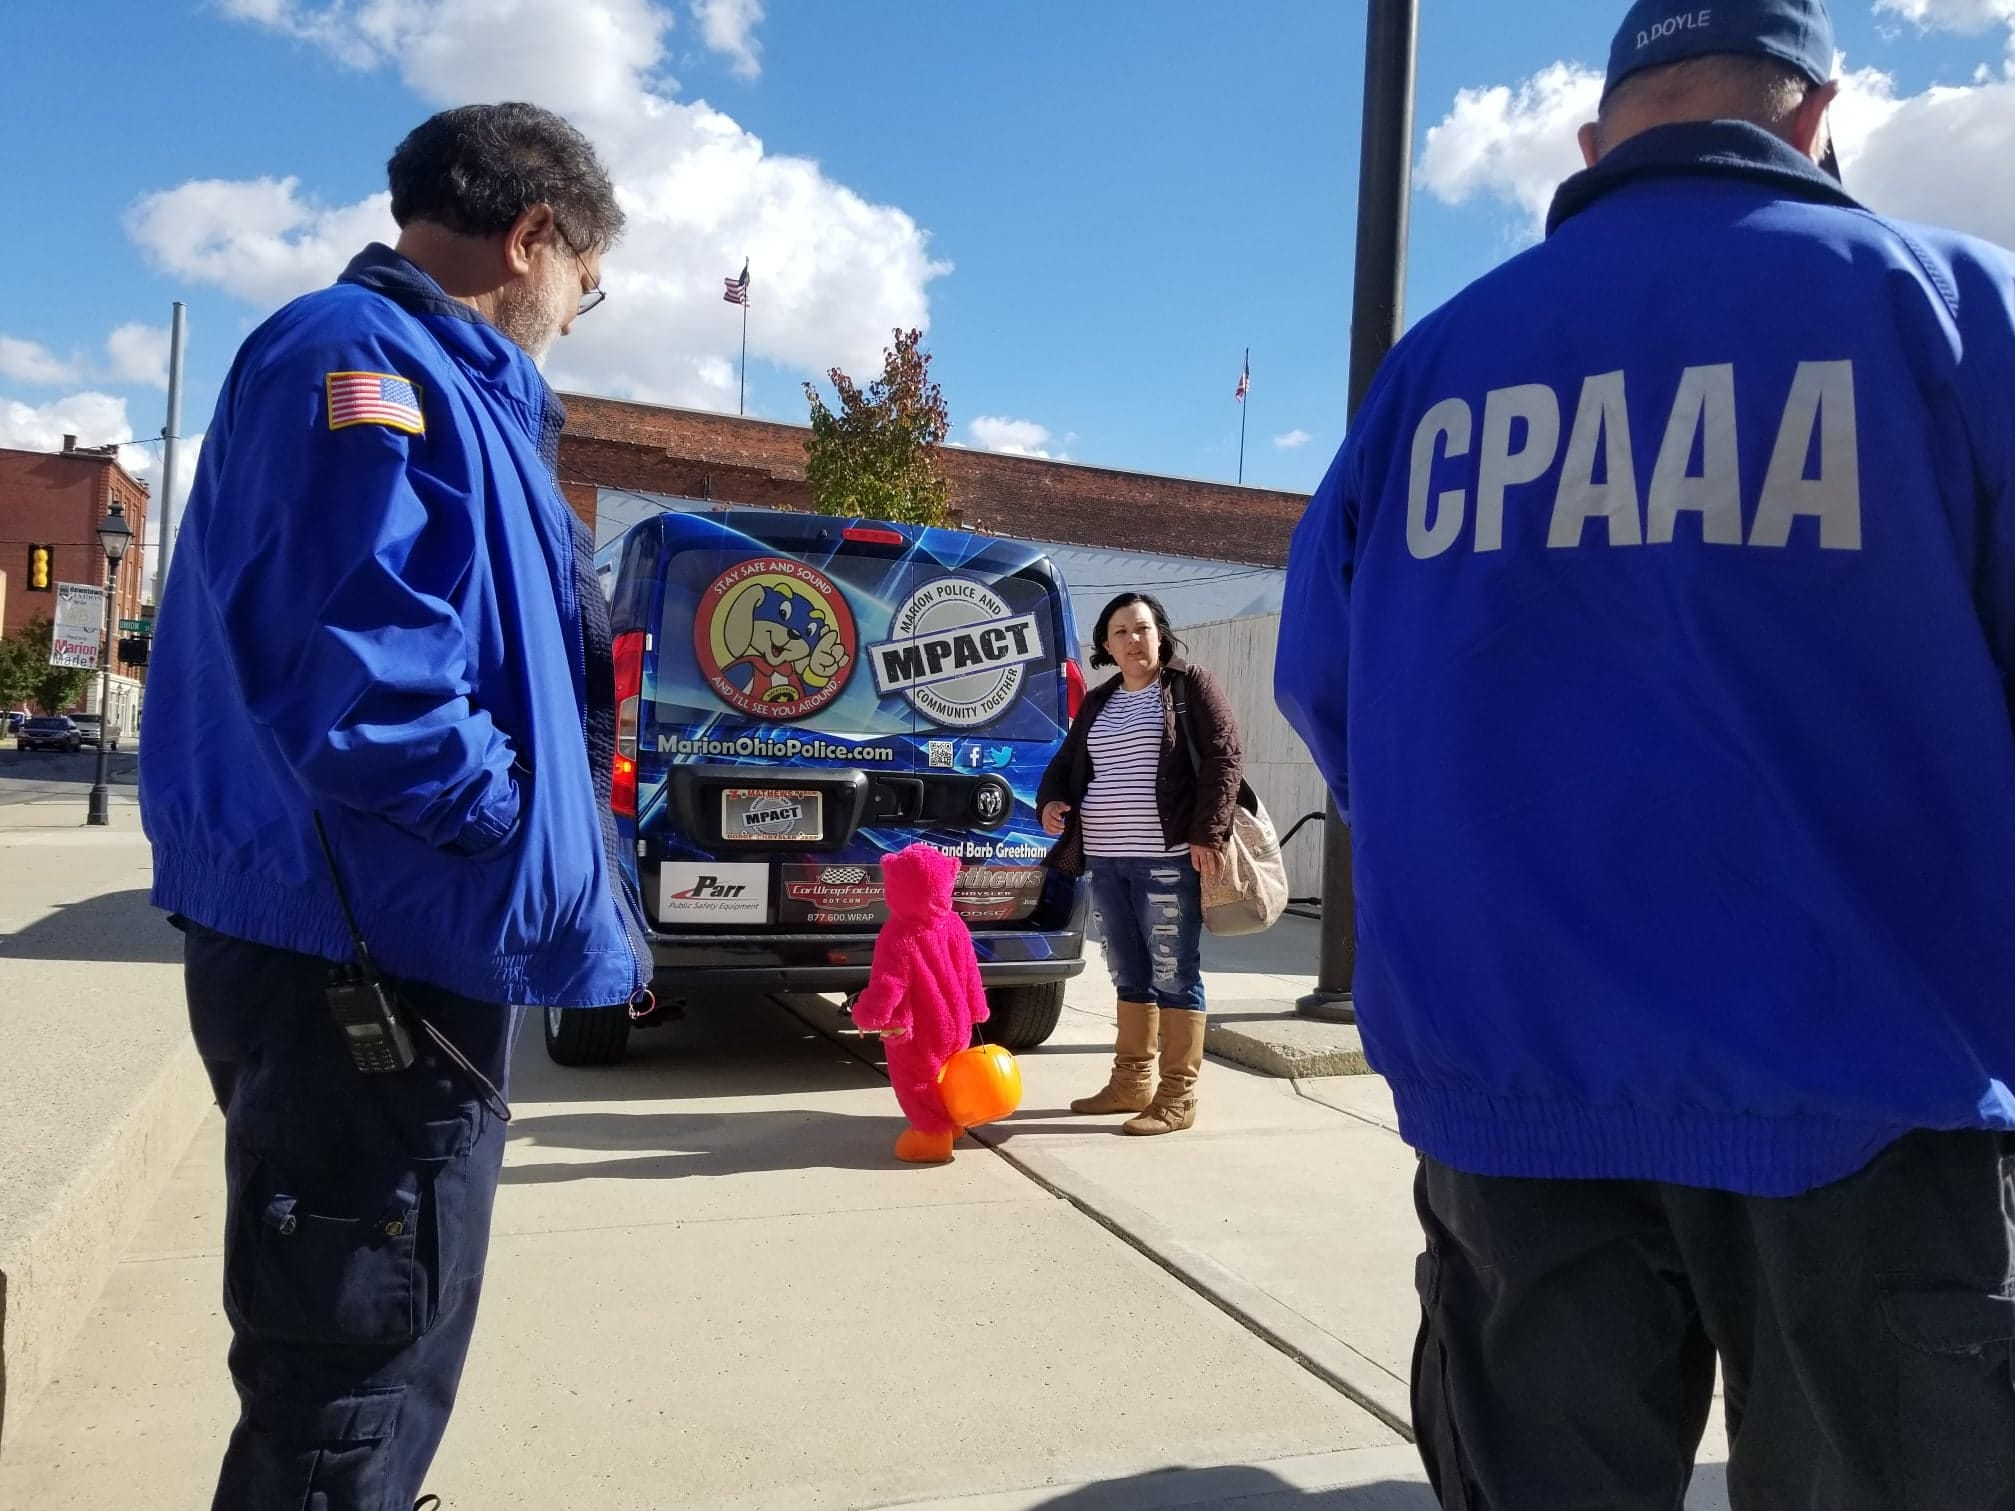 The CPAAA members are available to assist with community events, such as representing the police department during trick or treat. Members escorted Safety Pup to Garfield Elementary and assisted with Downtown Marion's trunk or treat event.